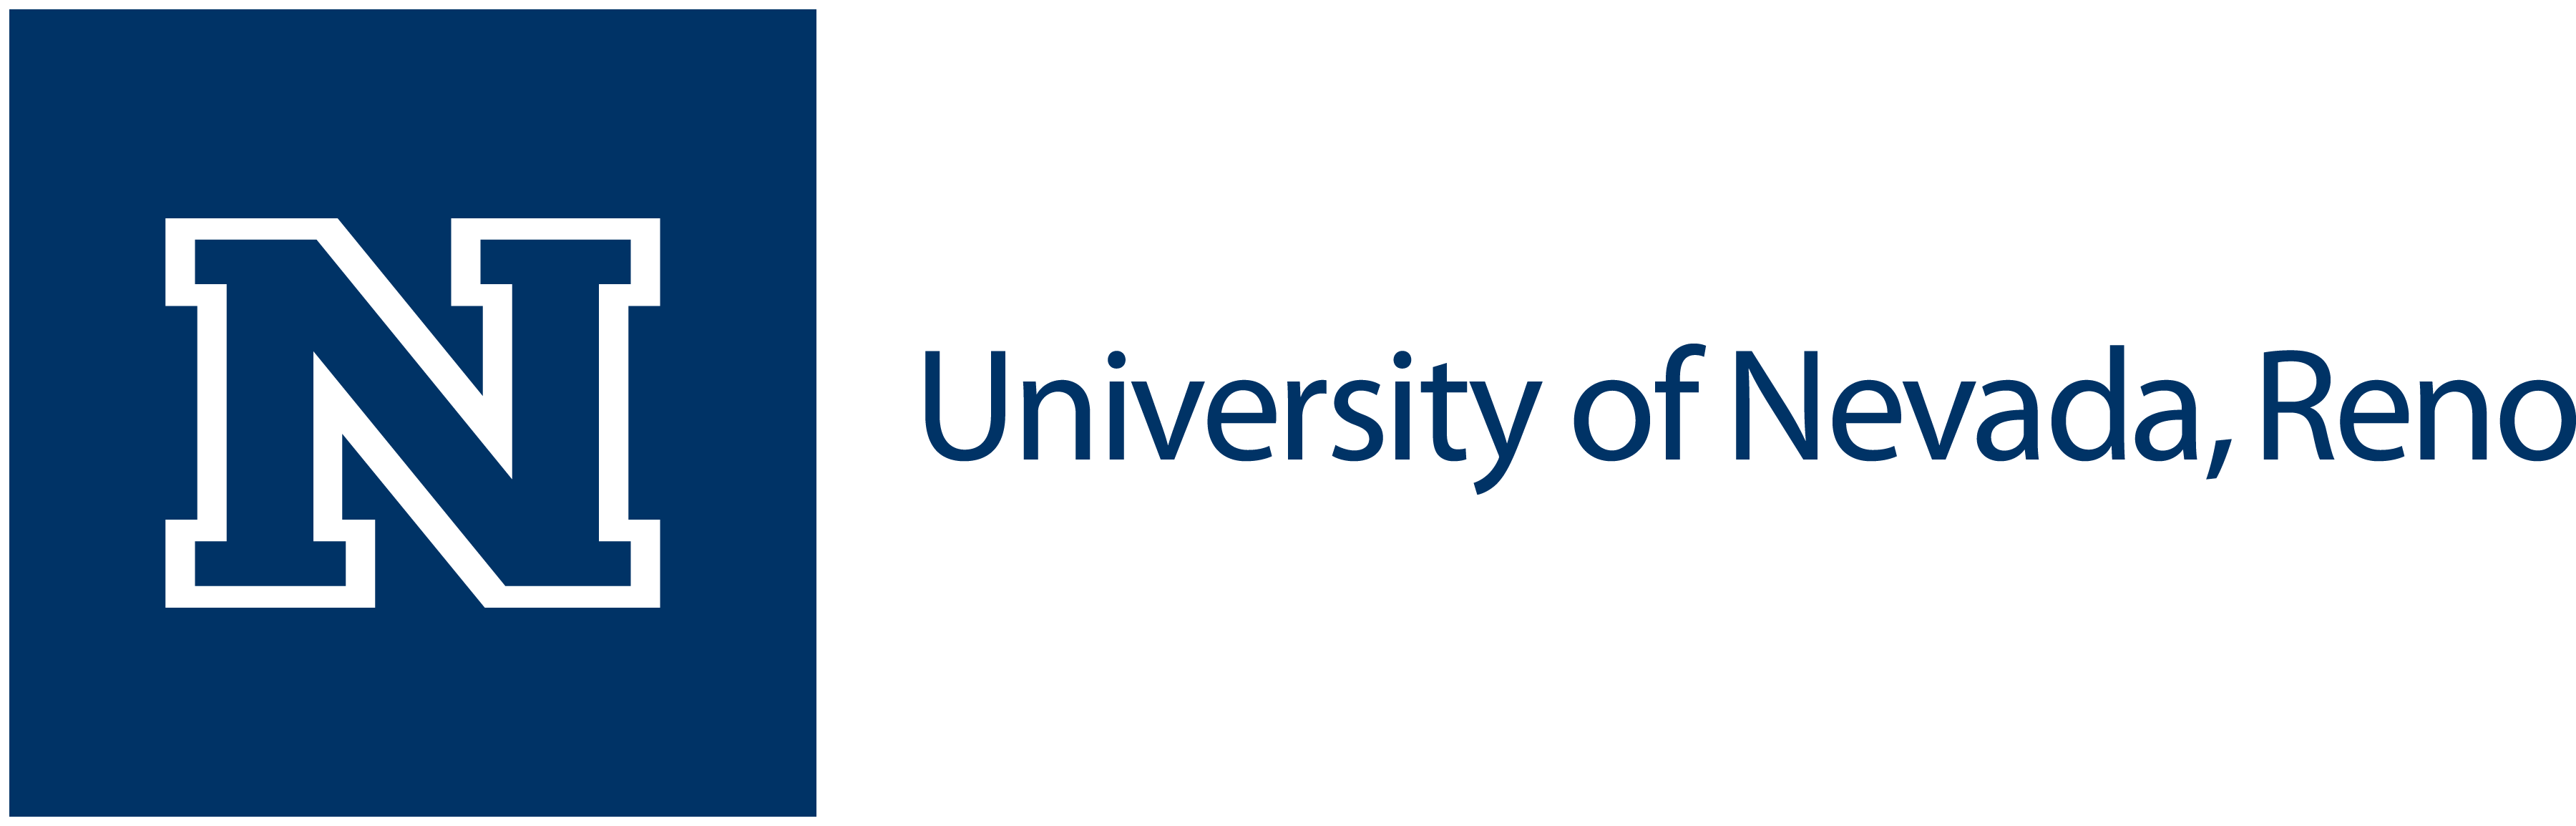 Logo - University of Nevada, Reno